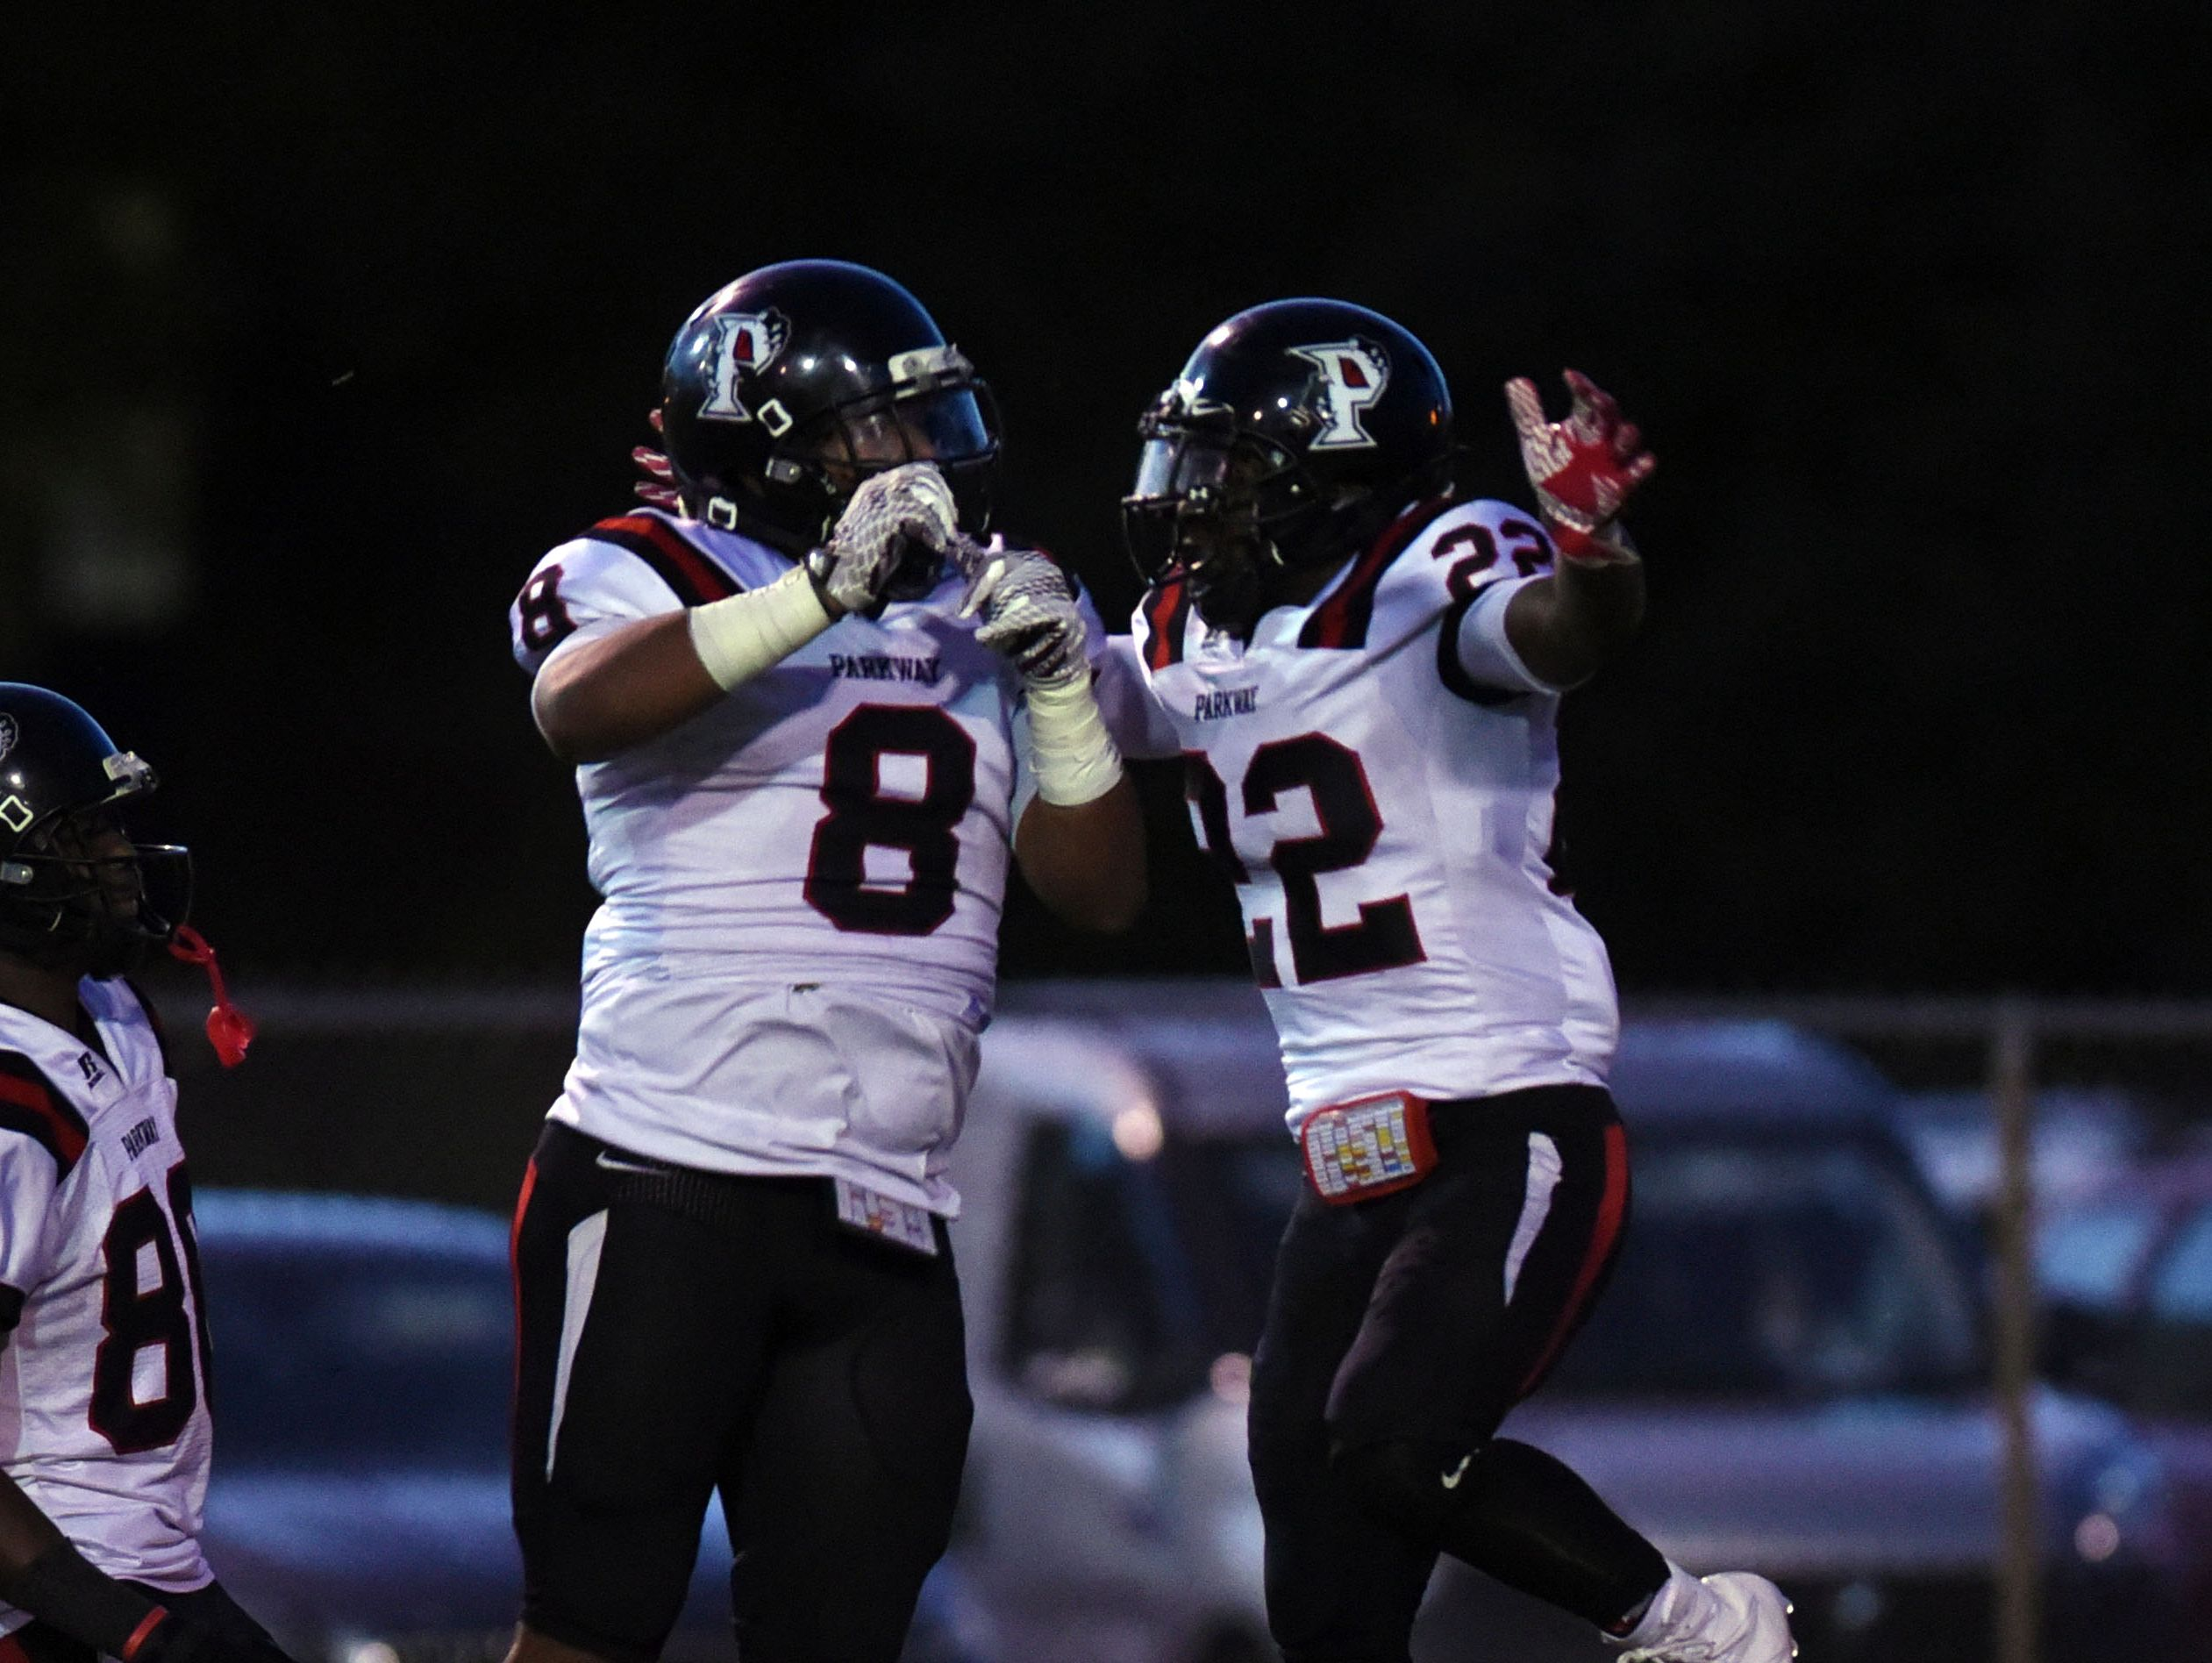 Parkway's Robert McKnight (22) celebrates his touchdown against Capt. Shreve during their District 1-5A game at Lee Hedges Stadium.